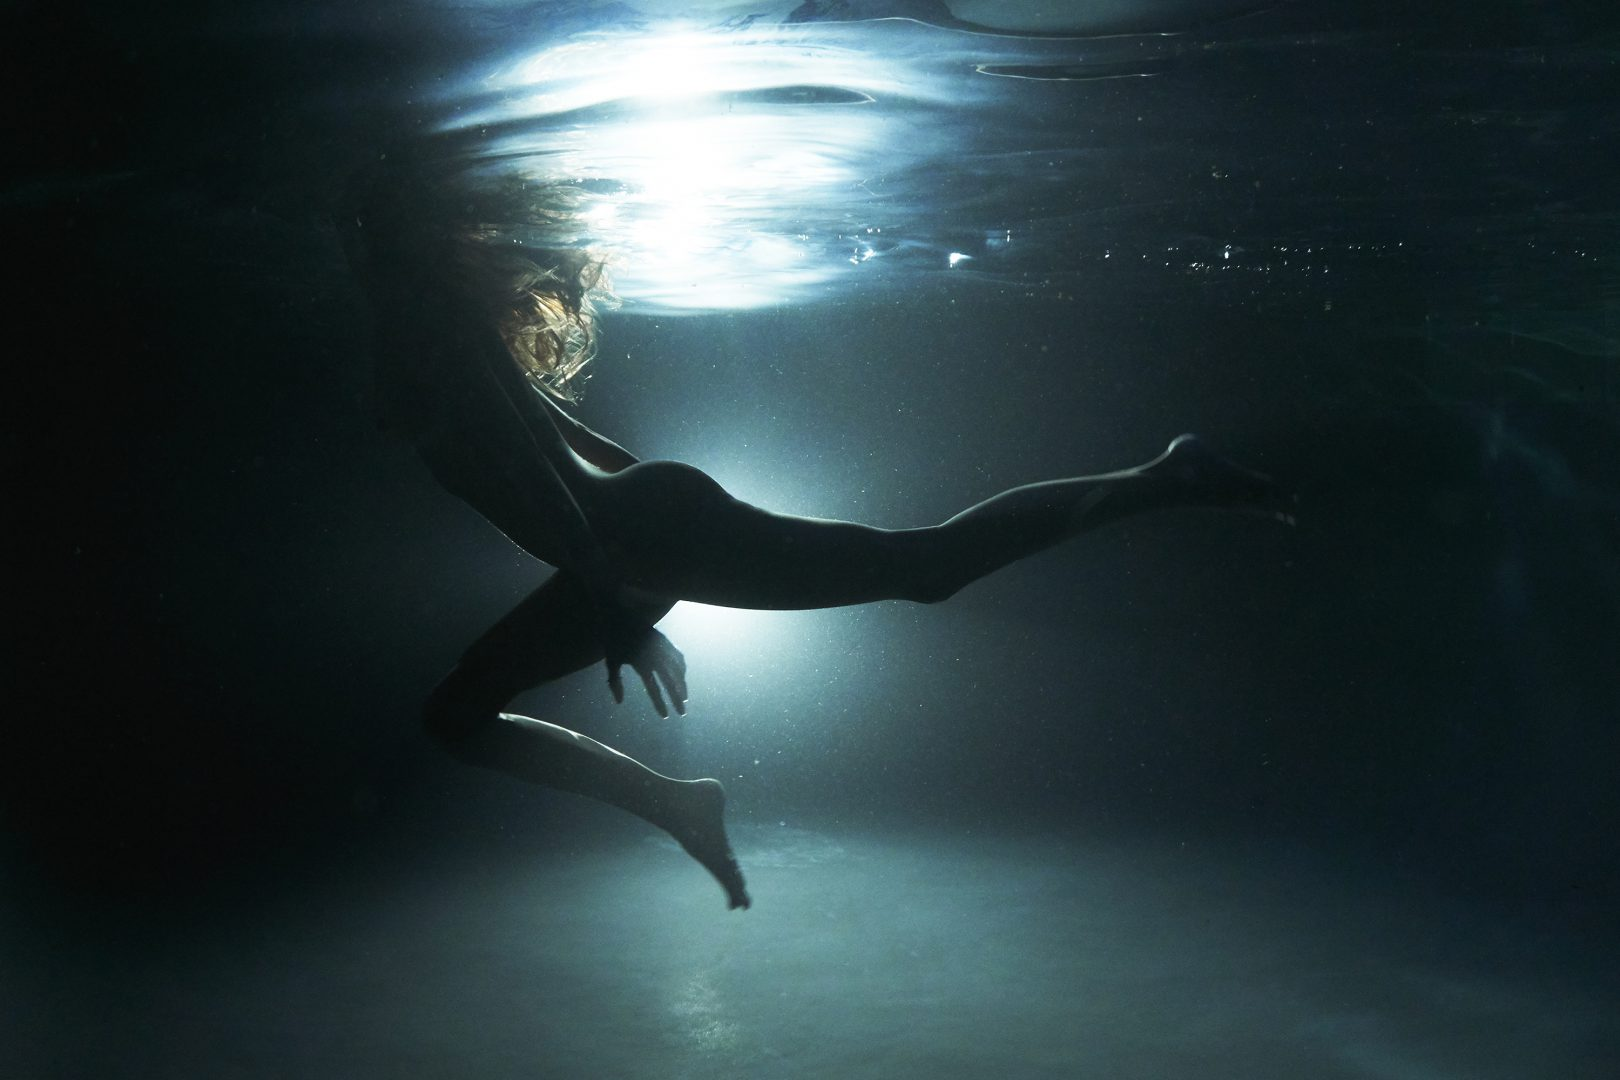 naked girl in underwater in swimming pool by stefan rappo